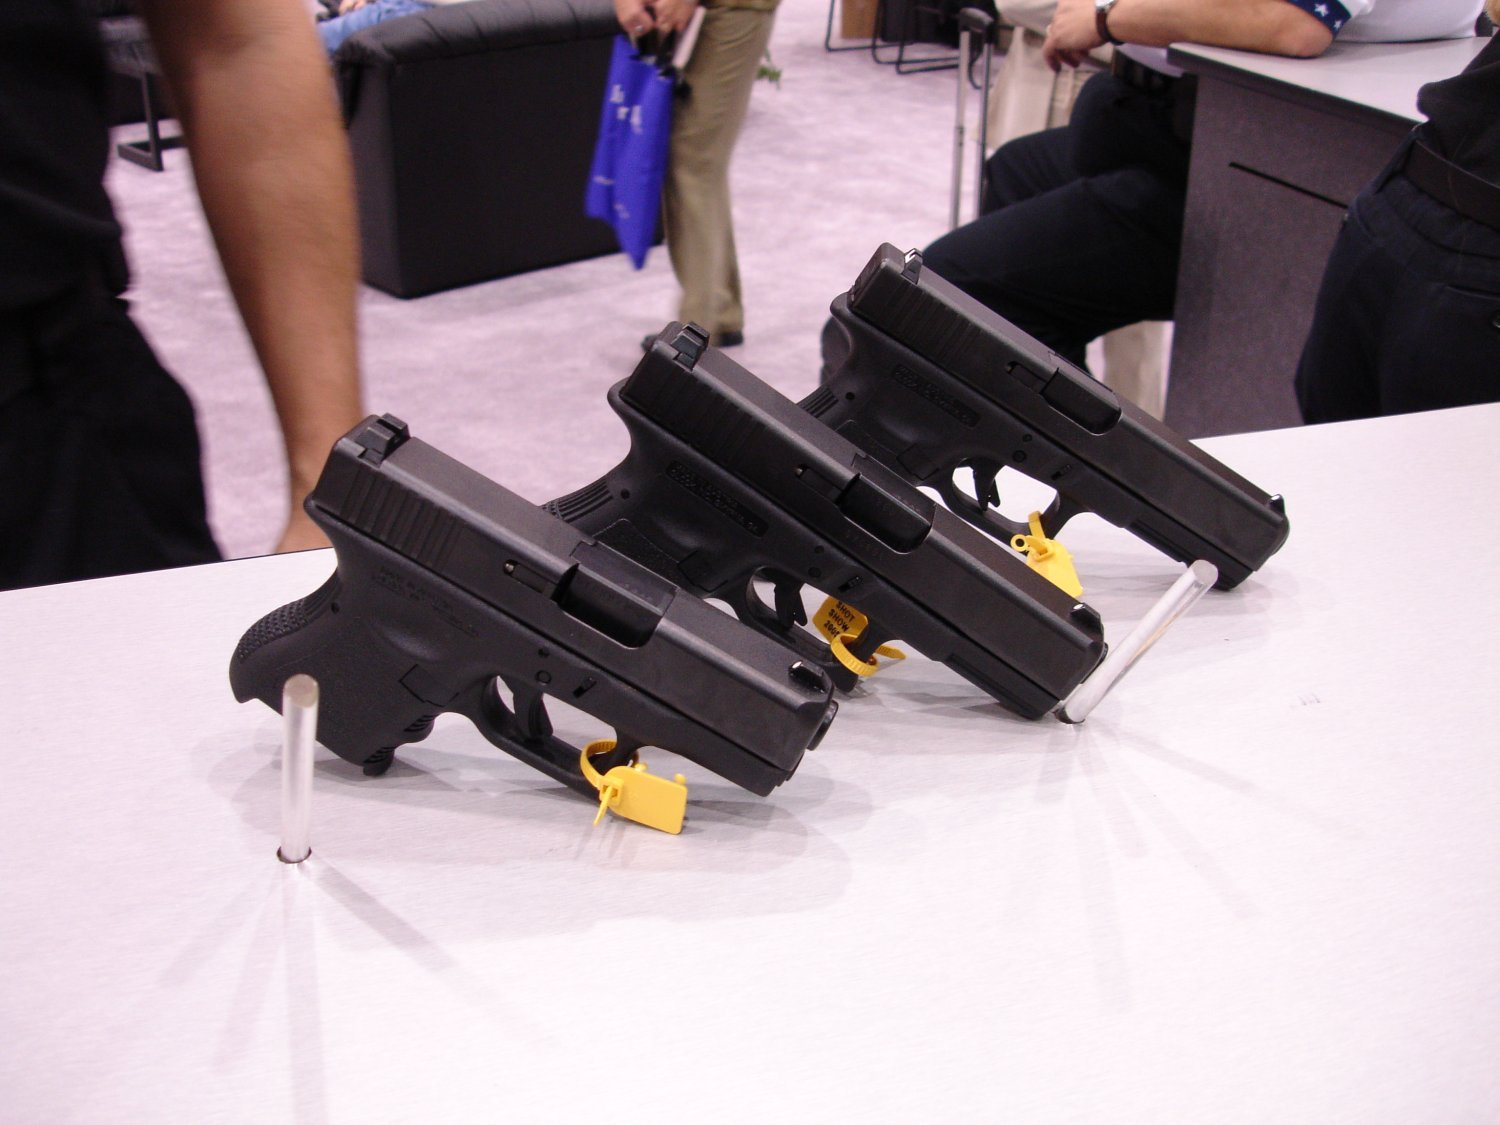 SHOTShow2005 Glock37,38,39 2 <!  :en  >Glock 38 (G38) Compact and Glock 39 (Subcompact) Pistols & Tactical Light/Laser<!  :  >